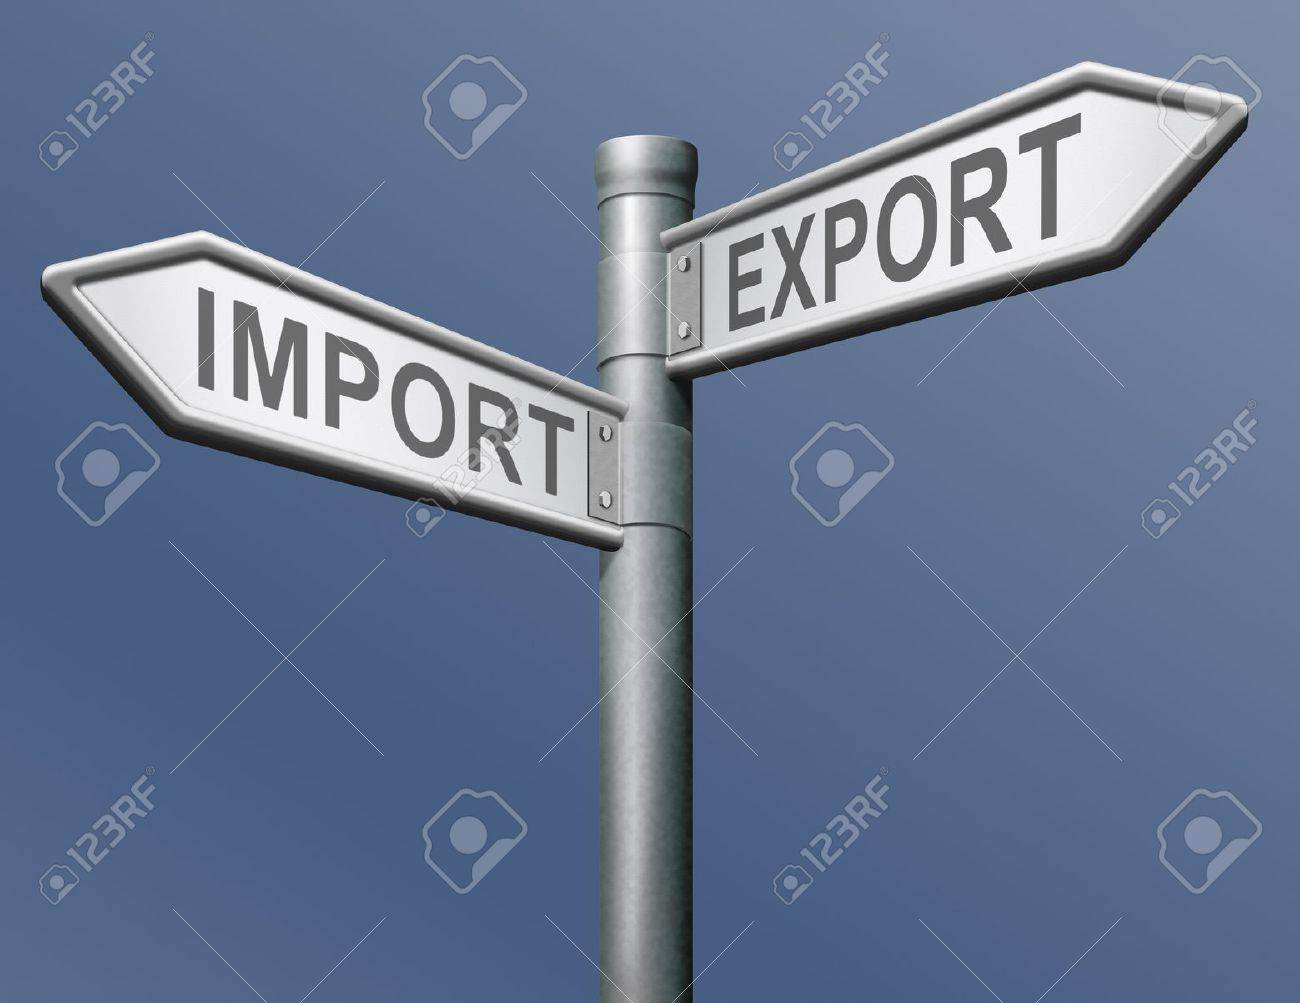 import and export freight transportation in international trade global economy and worldwide business Stock Photo - 13277731